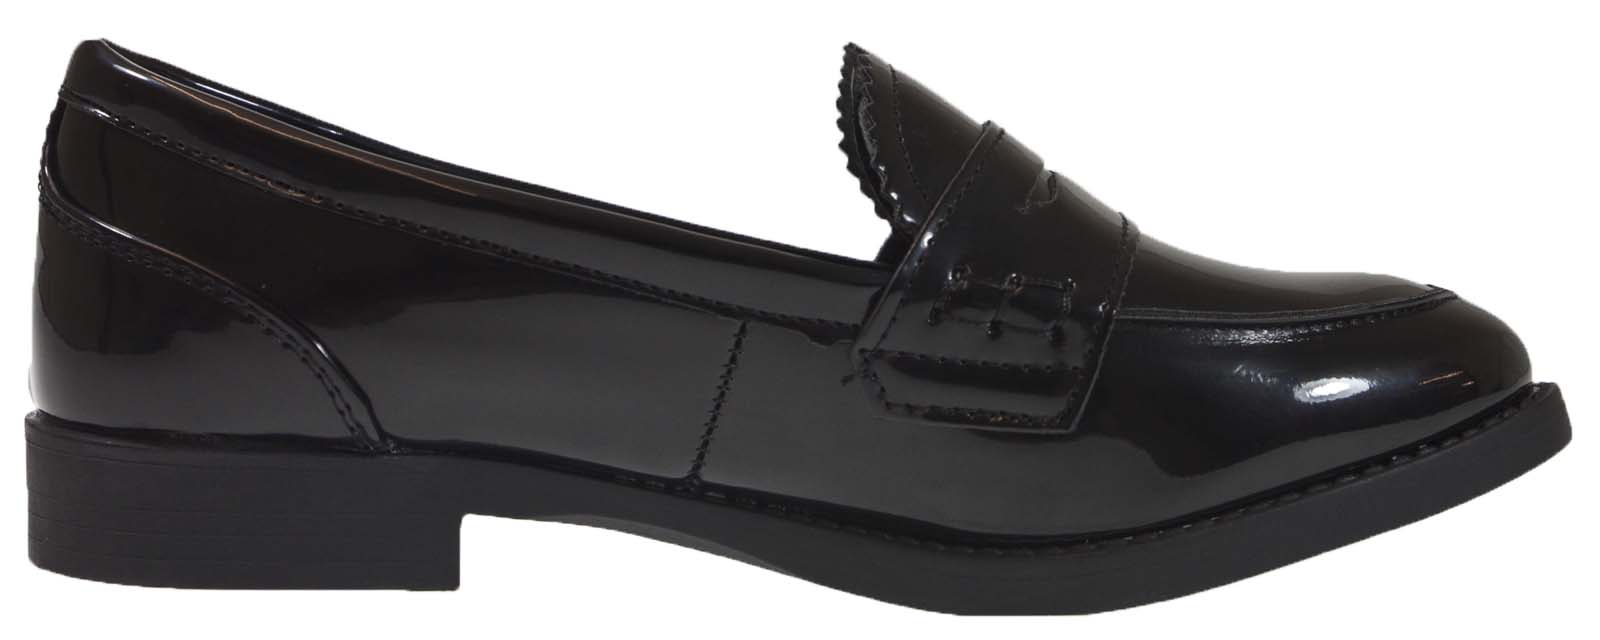 Girls Slip On Loafers Faux Leather School Shoes Womens Comfort Work ... ffc78e319